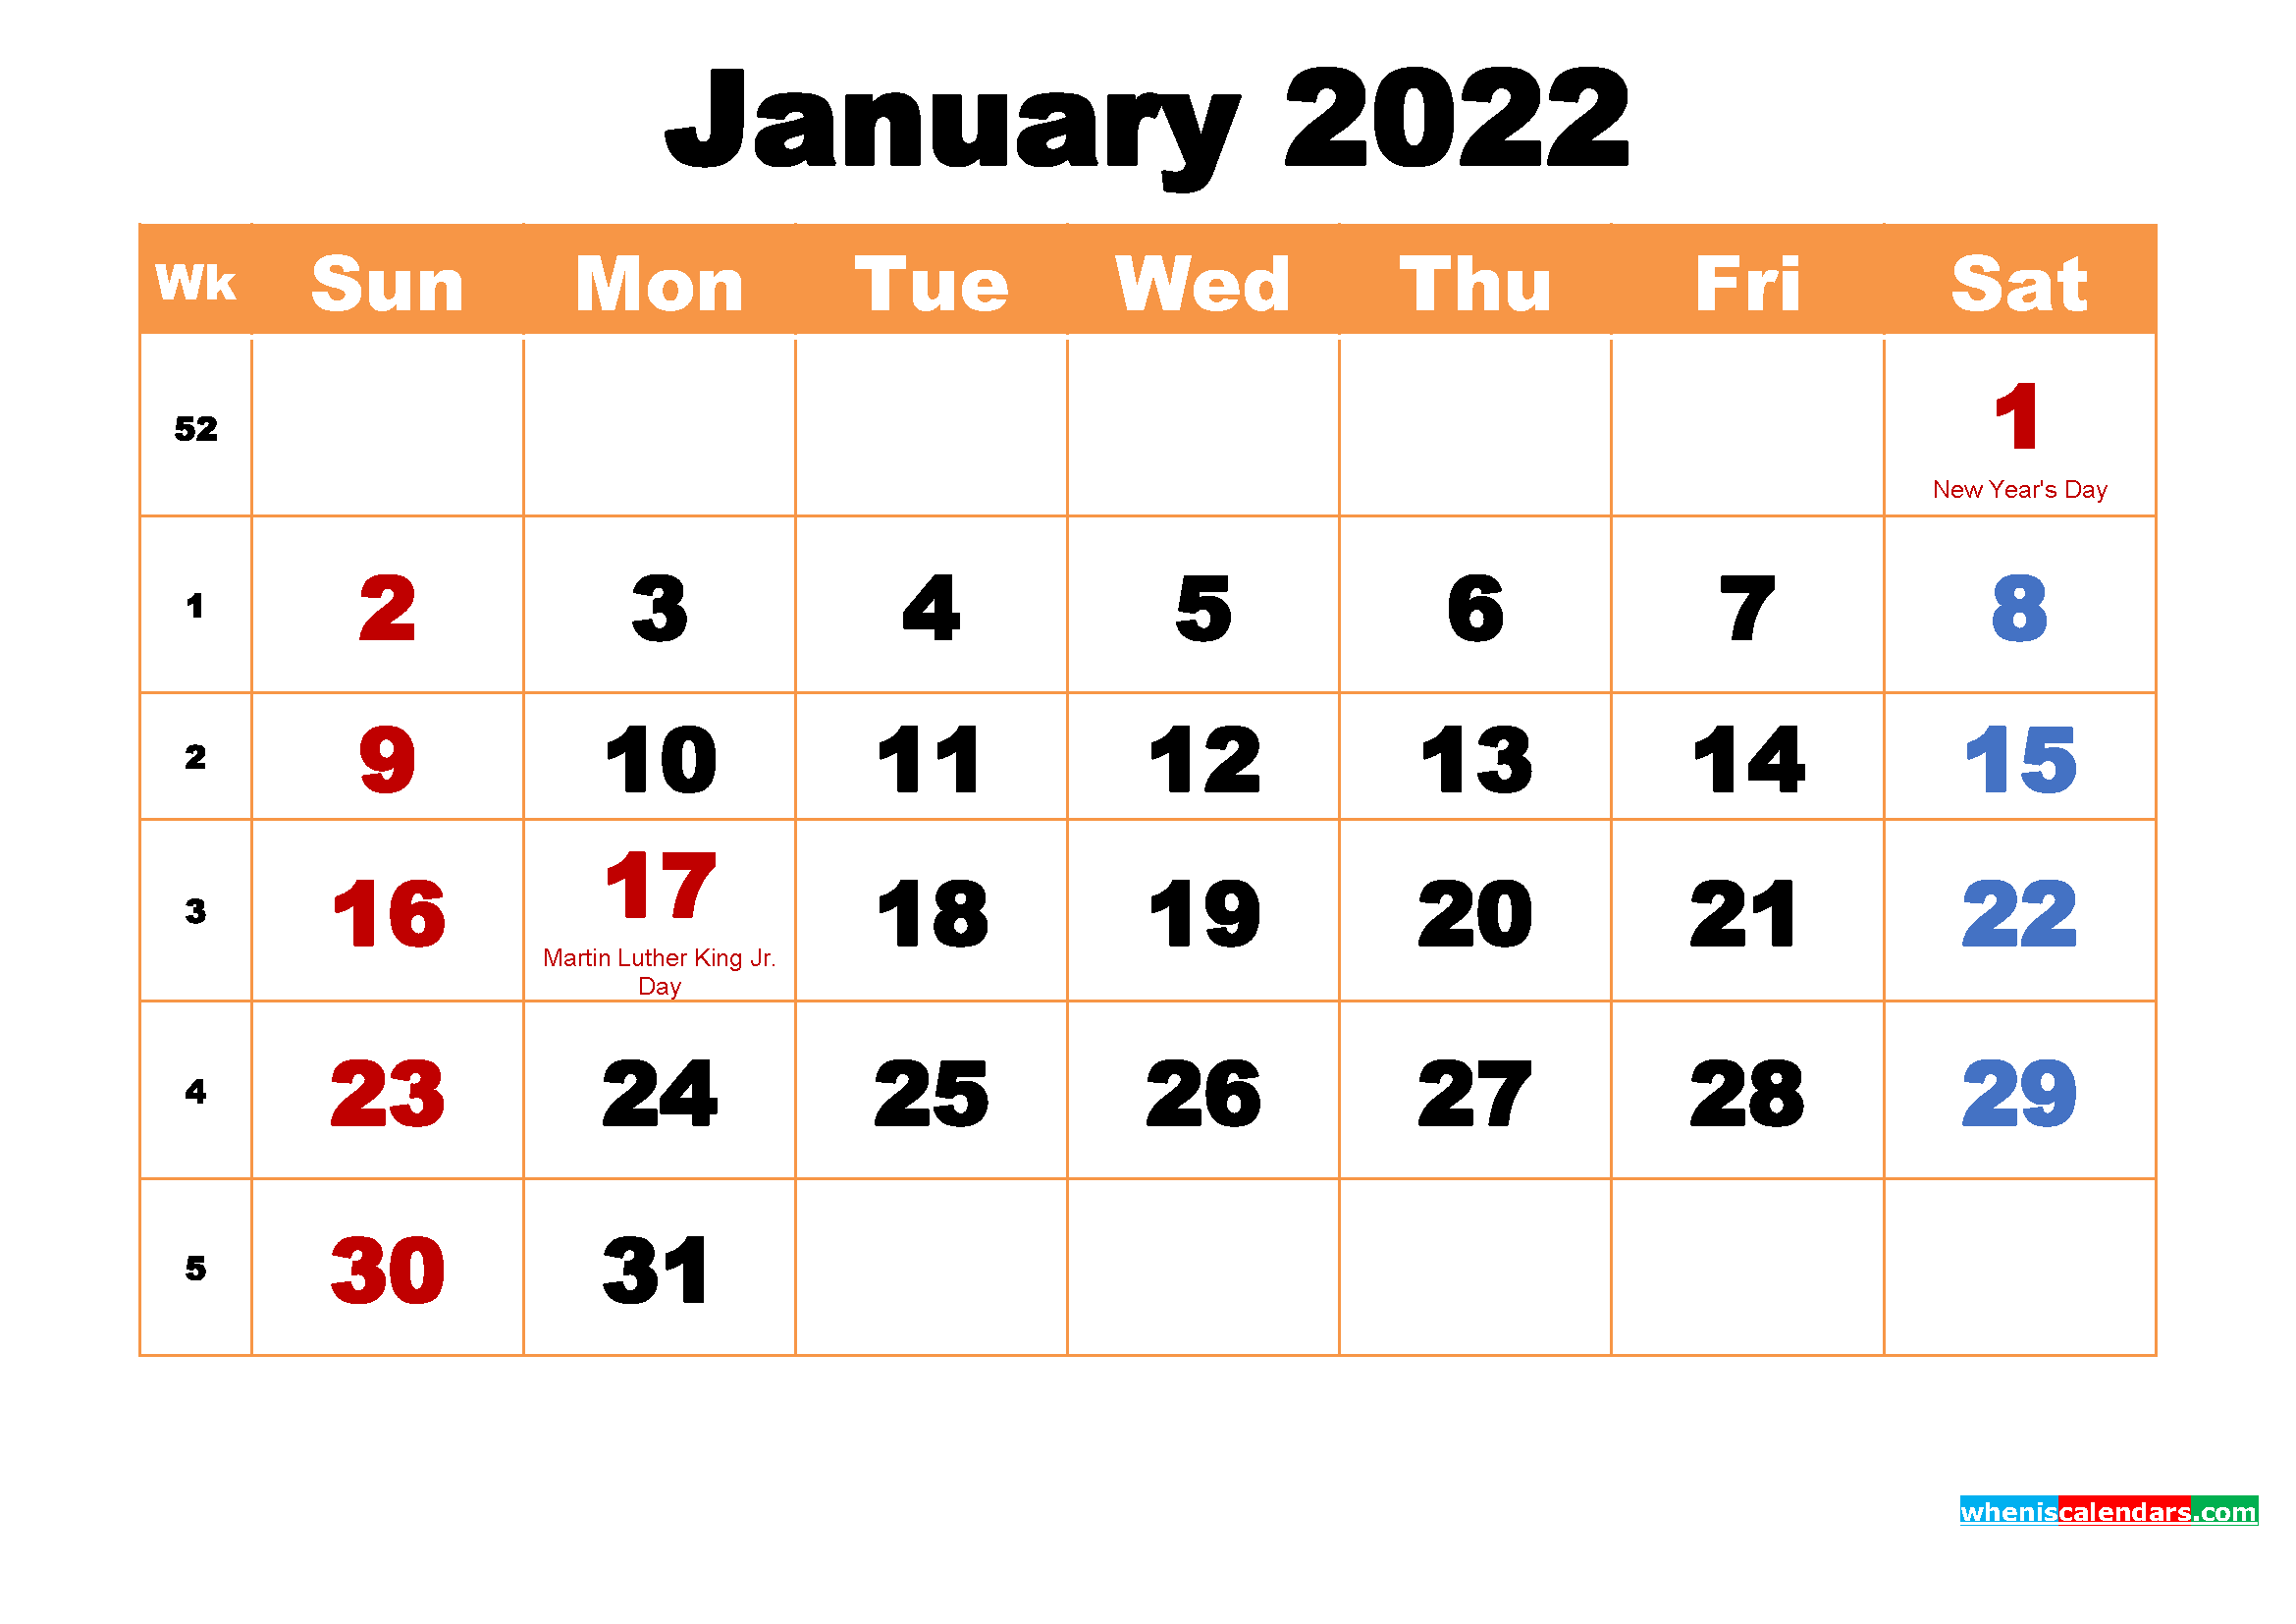 January 2022 Printable Monthly Calendar With Holidays Throughout January2022 Printable Calendar Cute